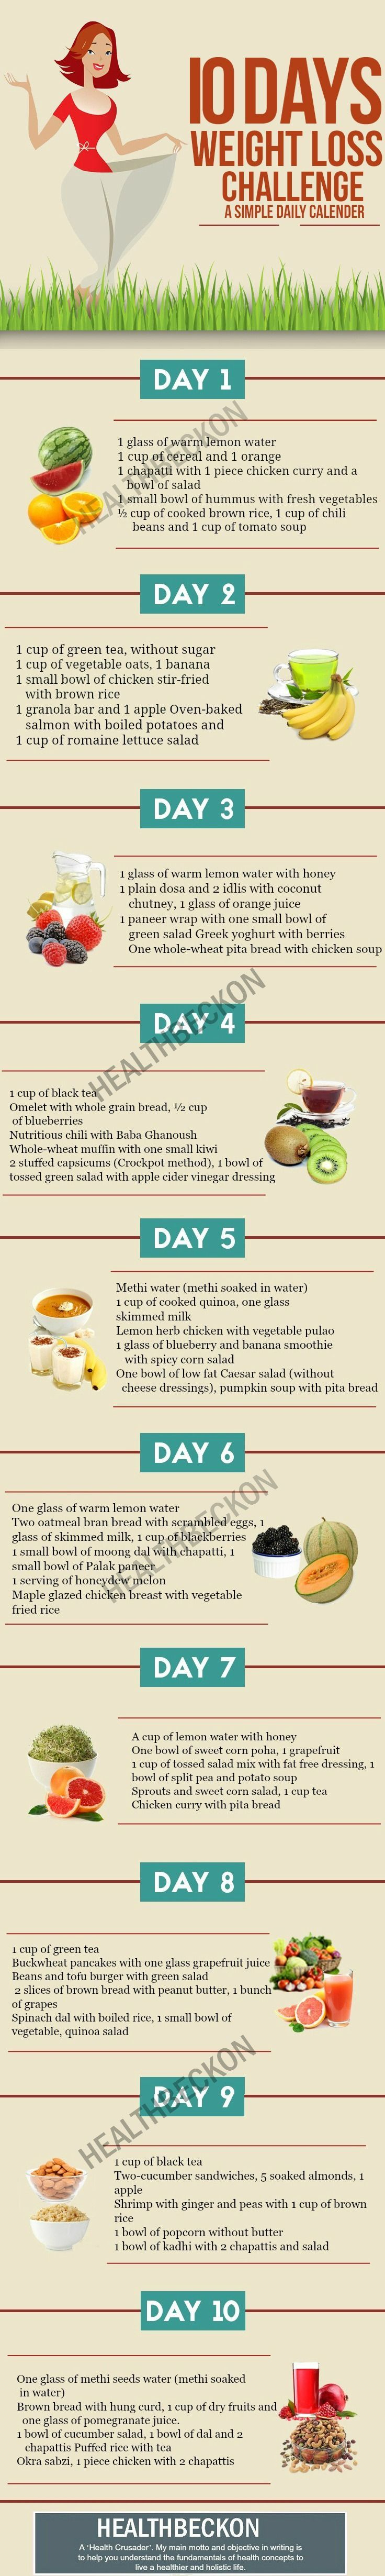 Sports weight loss supplements kids photo 1